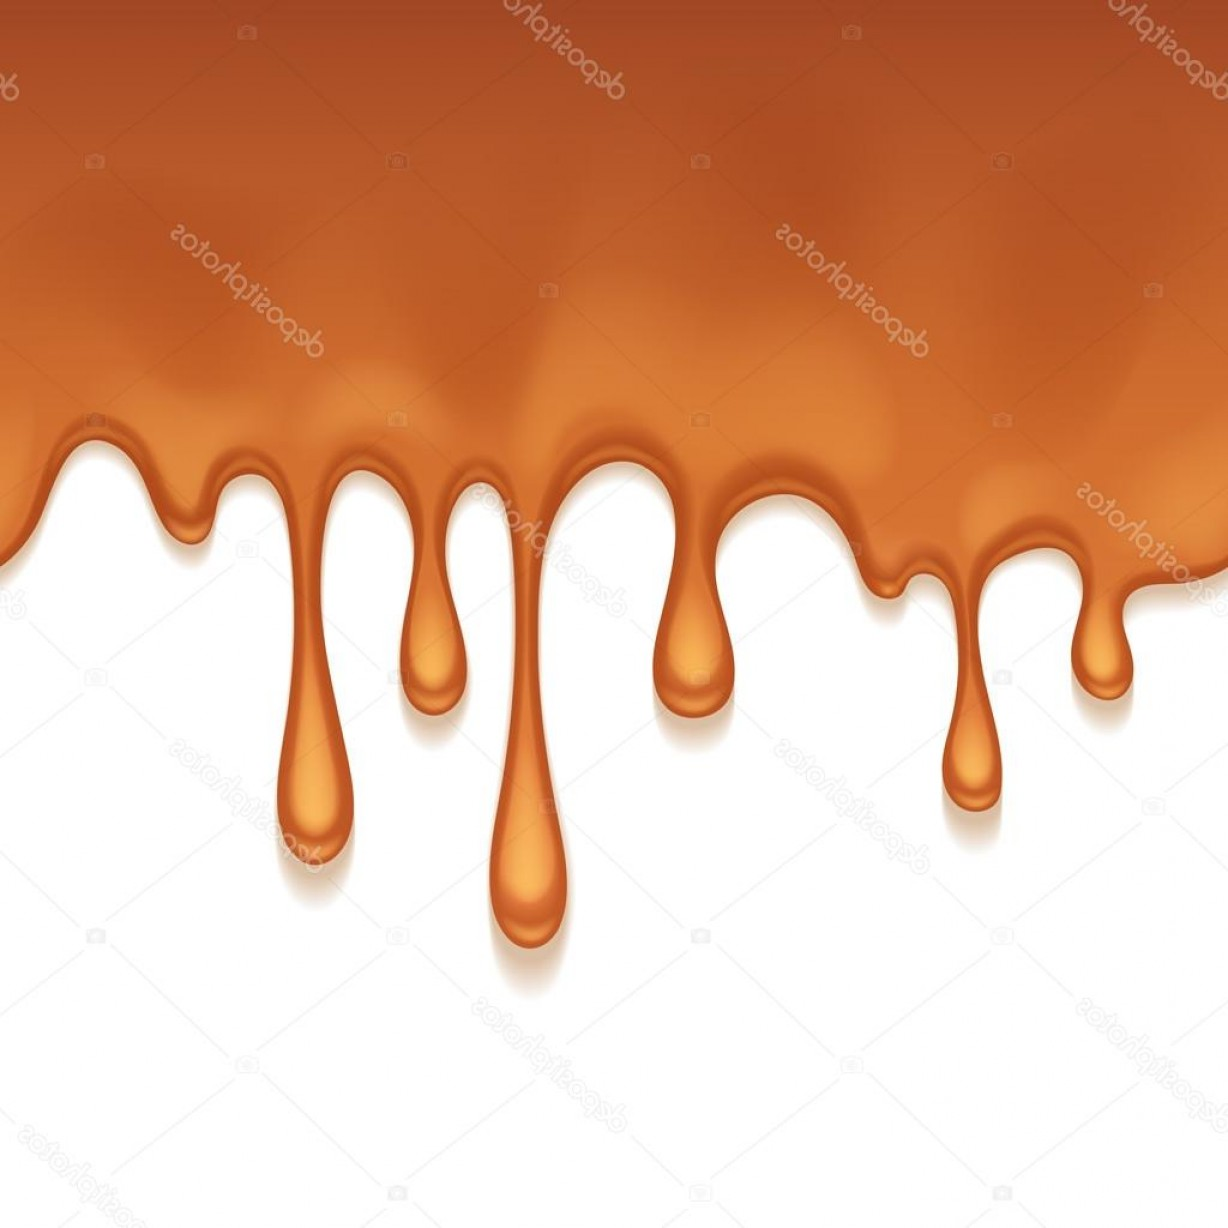 Caramel Drip Vector: Stock Illustration Caramel Drips Seamless Horizontal Border